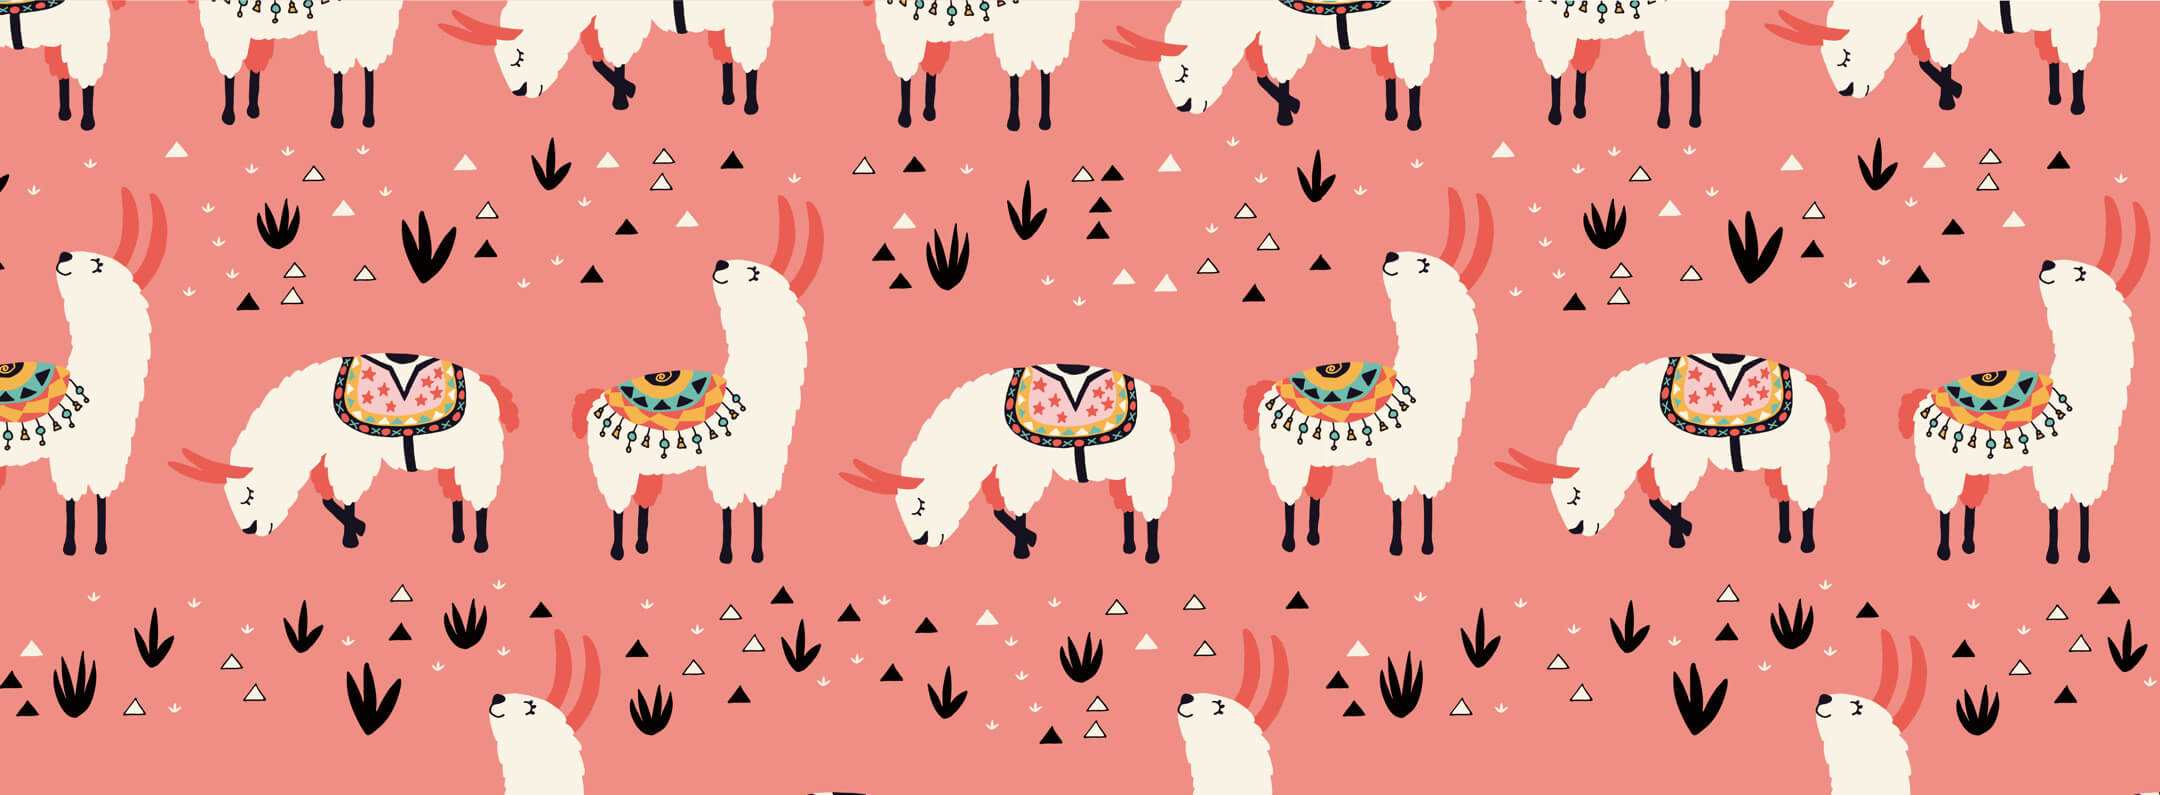 Colorful White Sheep with Grass Wallpaper Mural